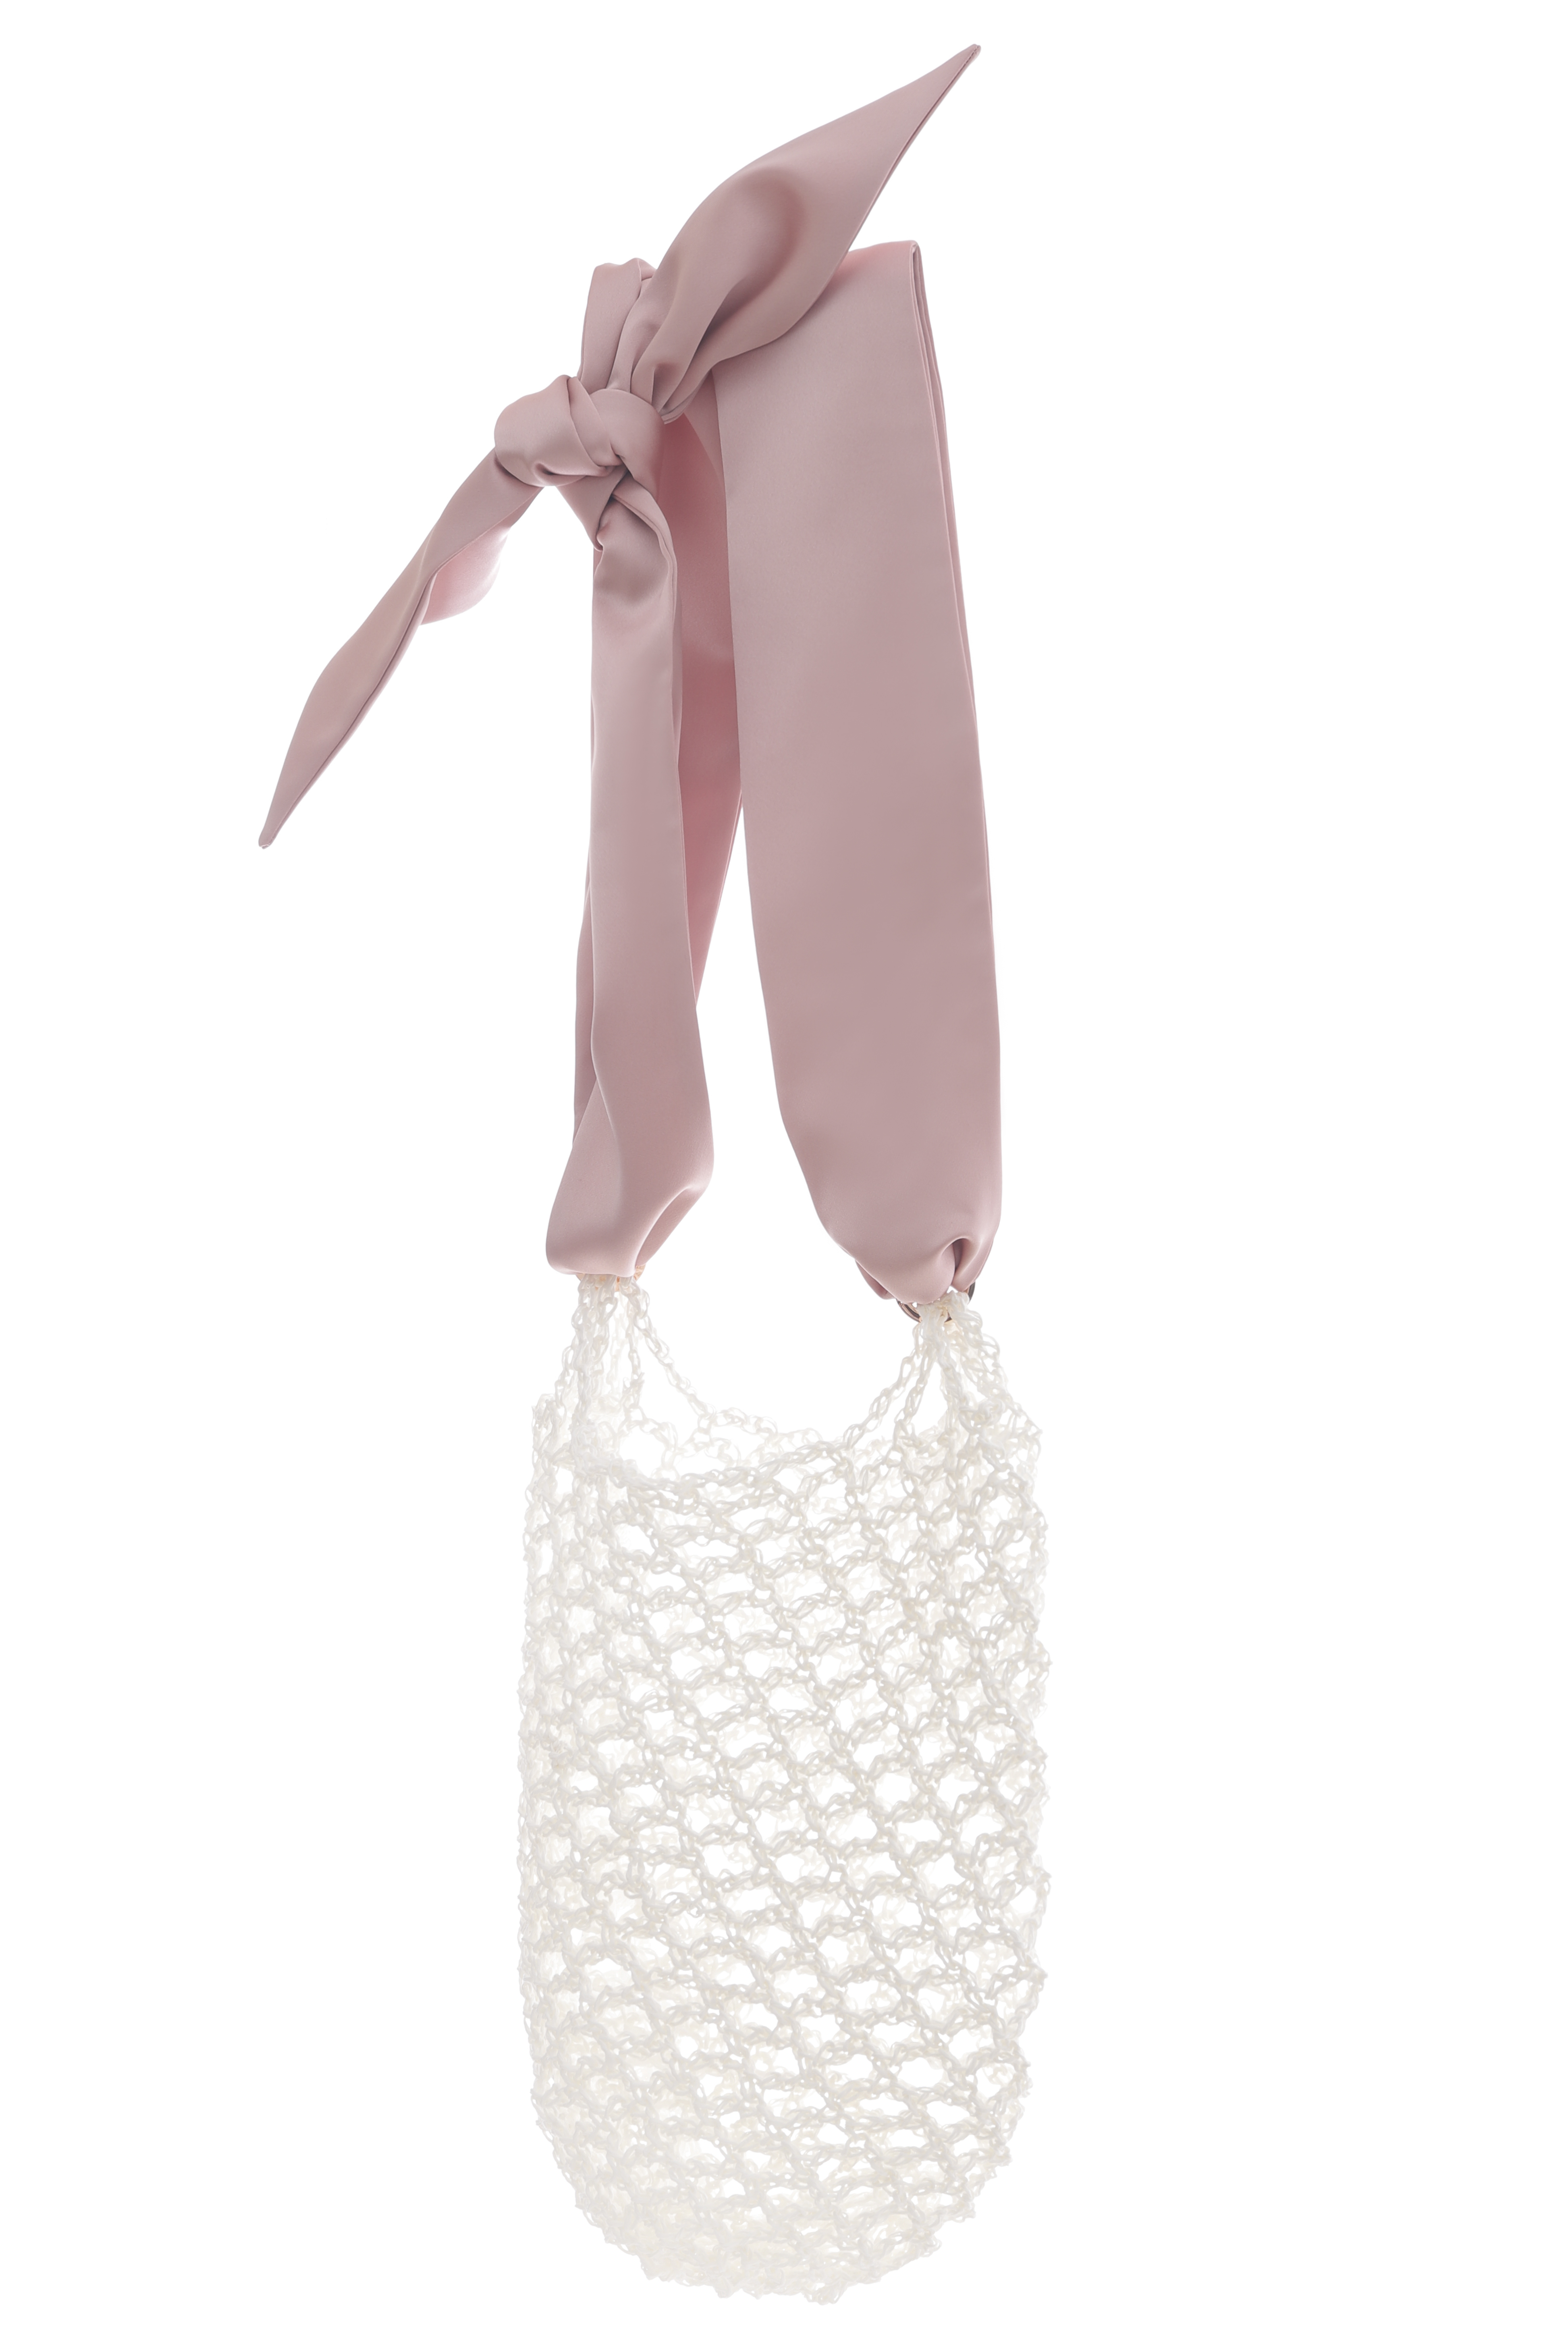 Paloma Net Bag - Creme M by 0711 Tbilisi on curated-crowd.com